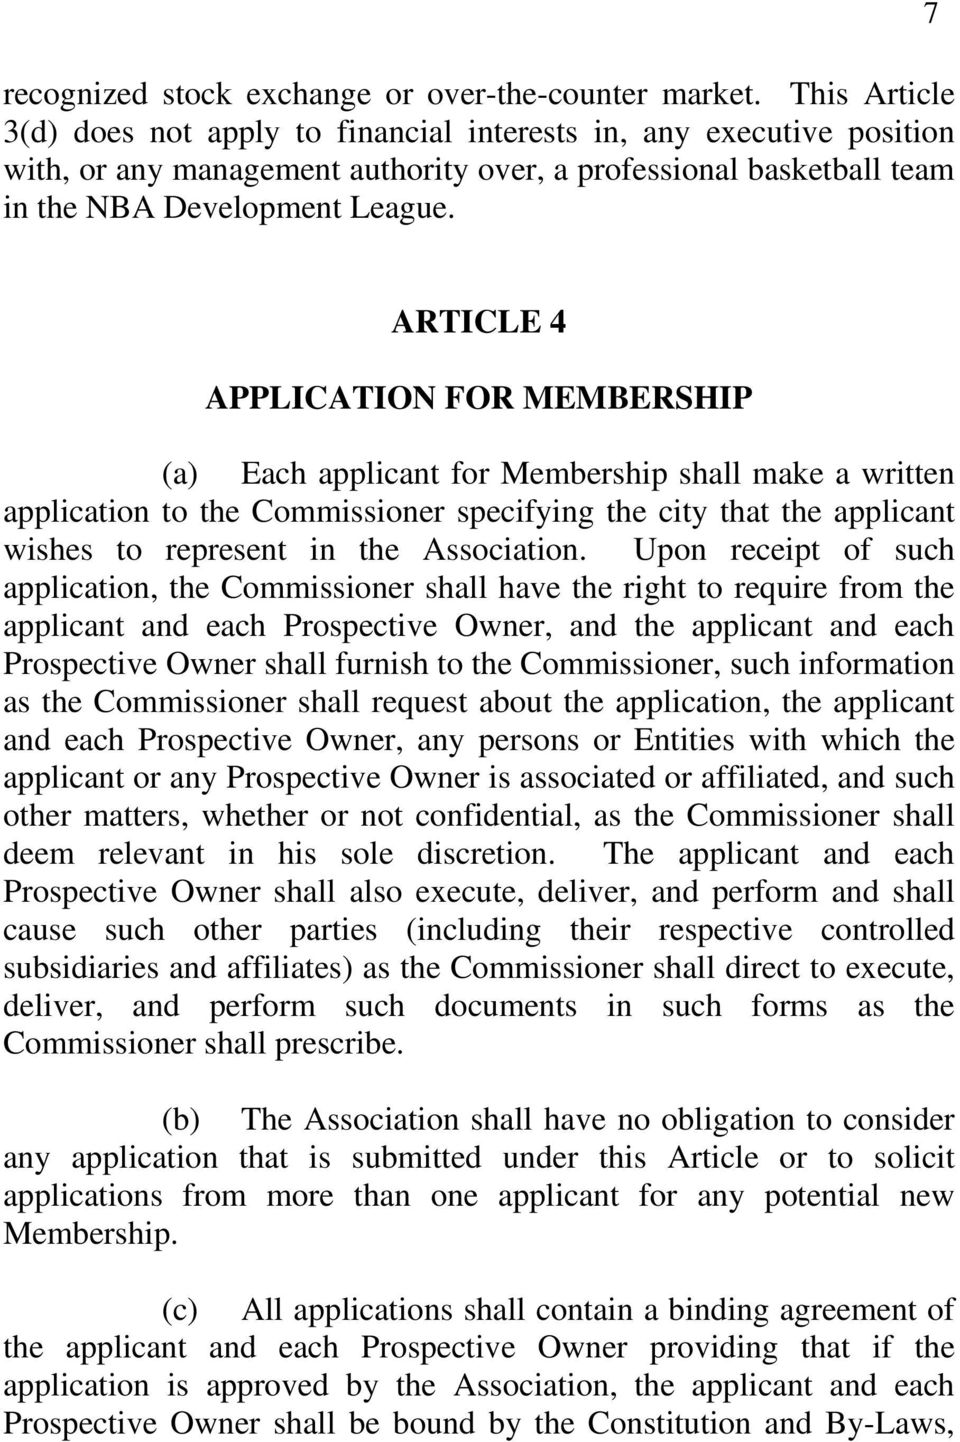 7 ARTICLE 4 APPLICATION FOR MEMBERSHIP (a) Each applicant for Membership shall make a written application to the Commissioner specifying the city that the applicant wishes to represent in the